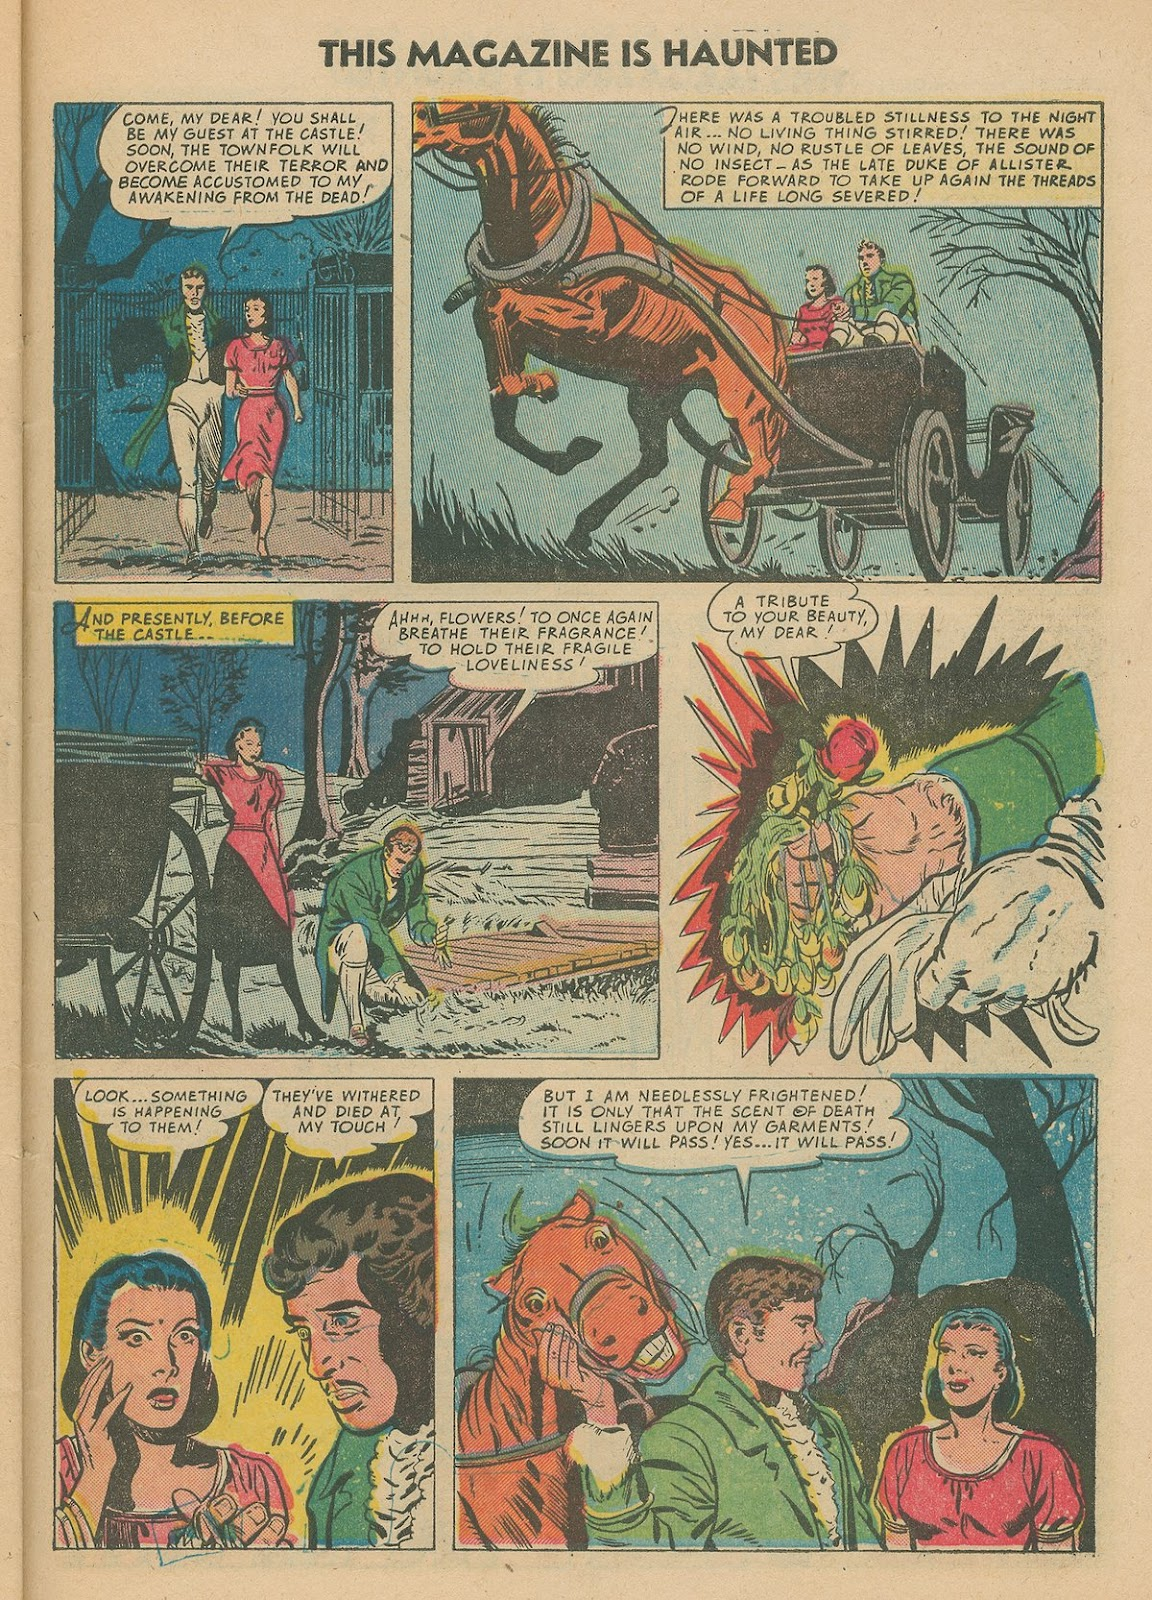 Read online This Magazine Is Haunted comic -  Issue #21 - 27